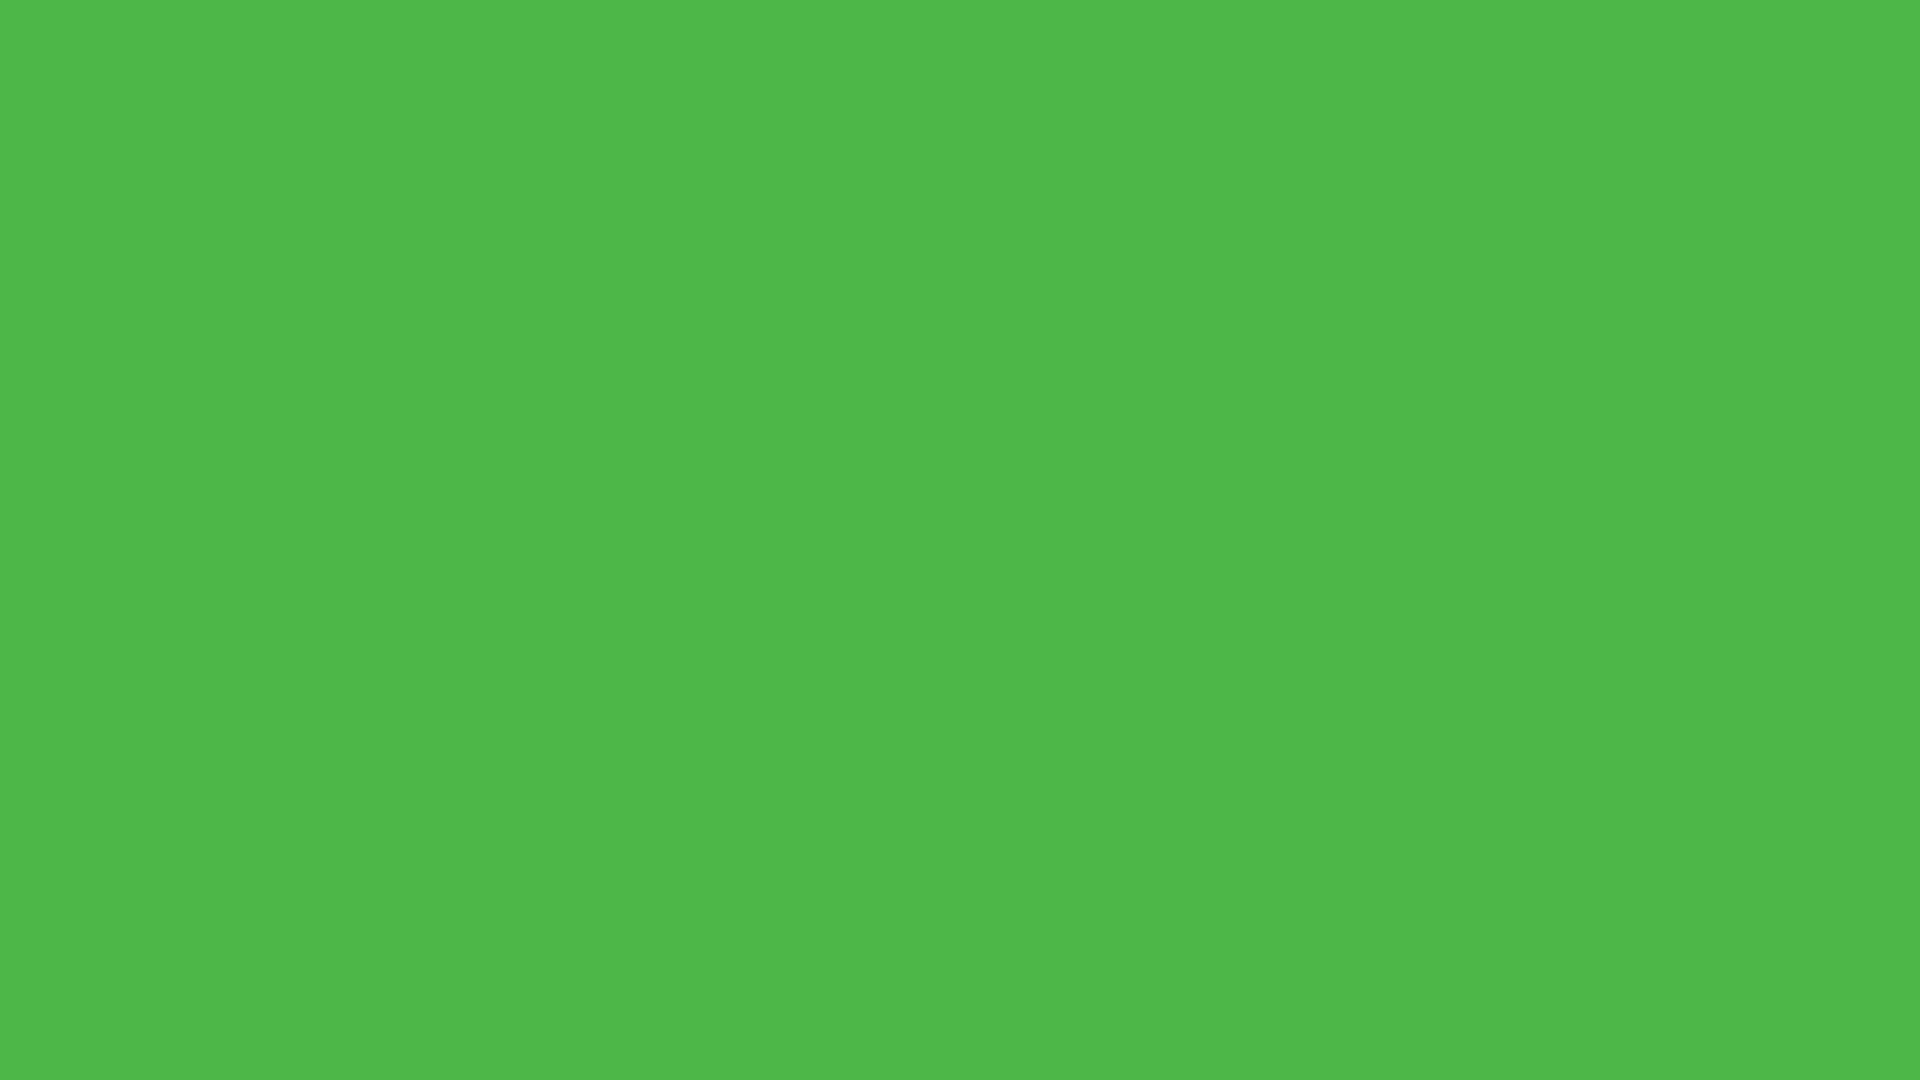 Lime Green Solid Color Background